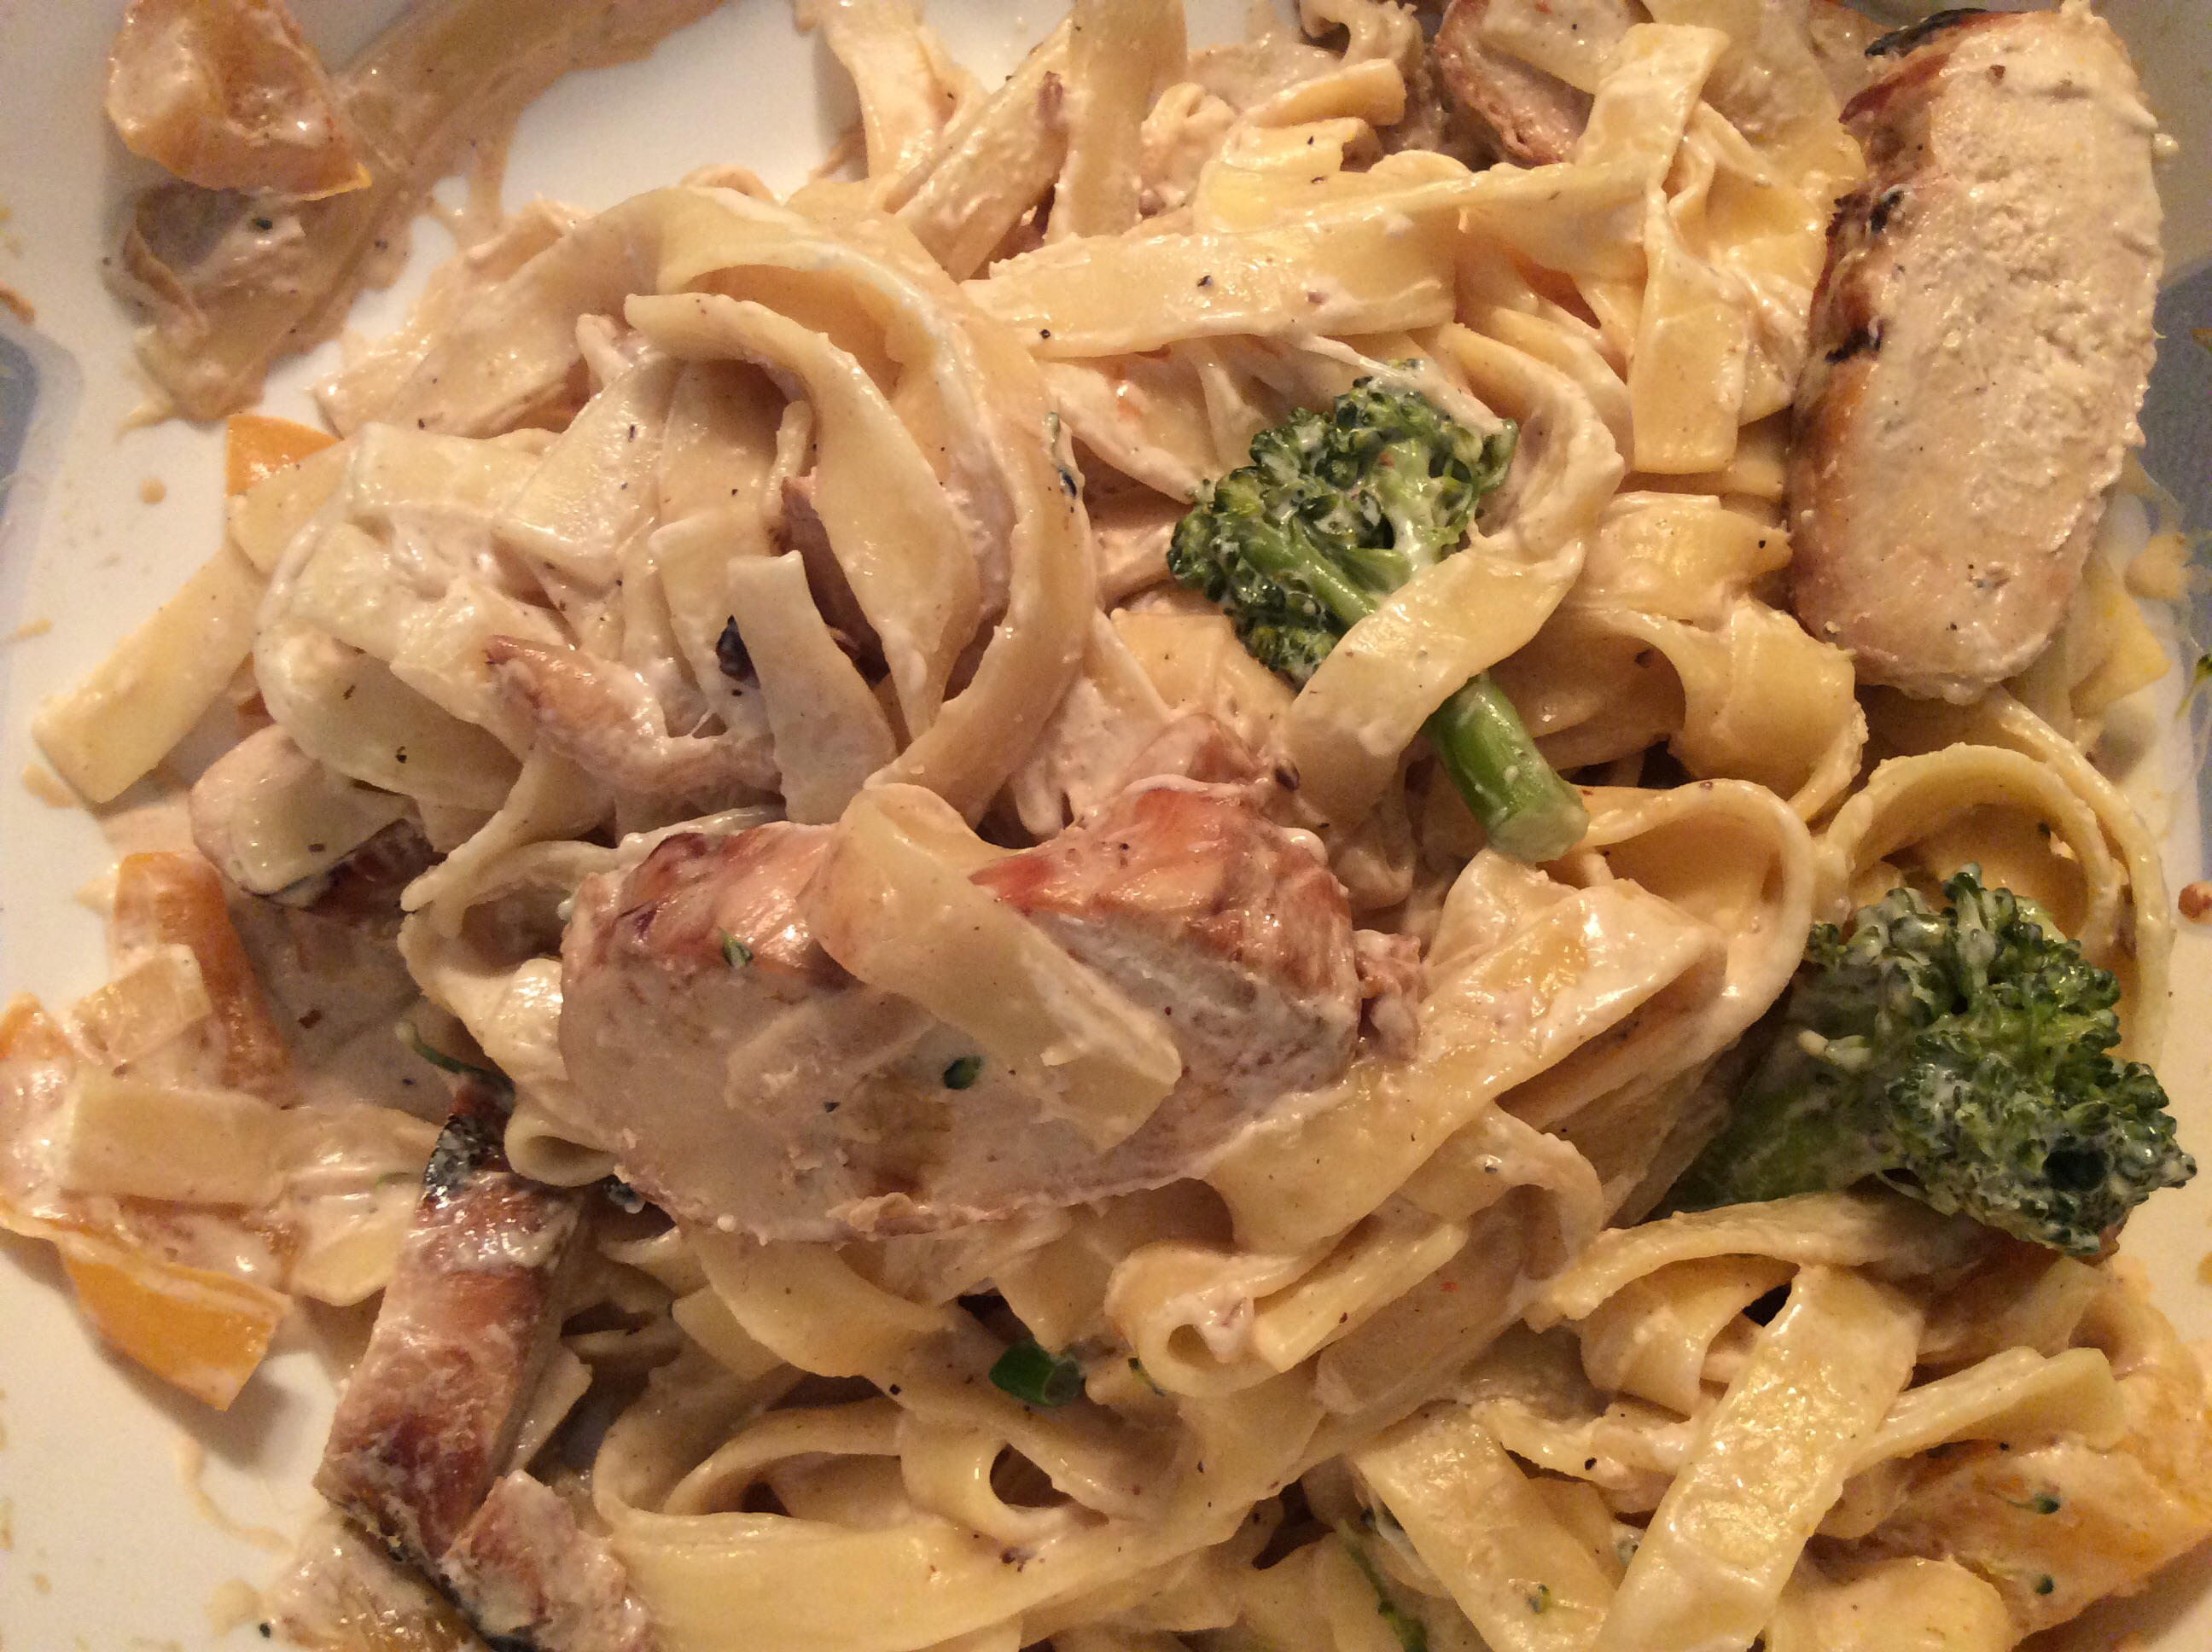 Herbed Chicken and Fettuccini janmac